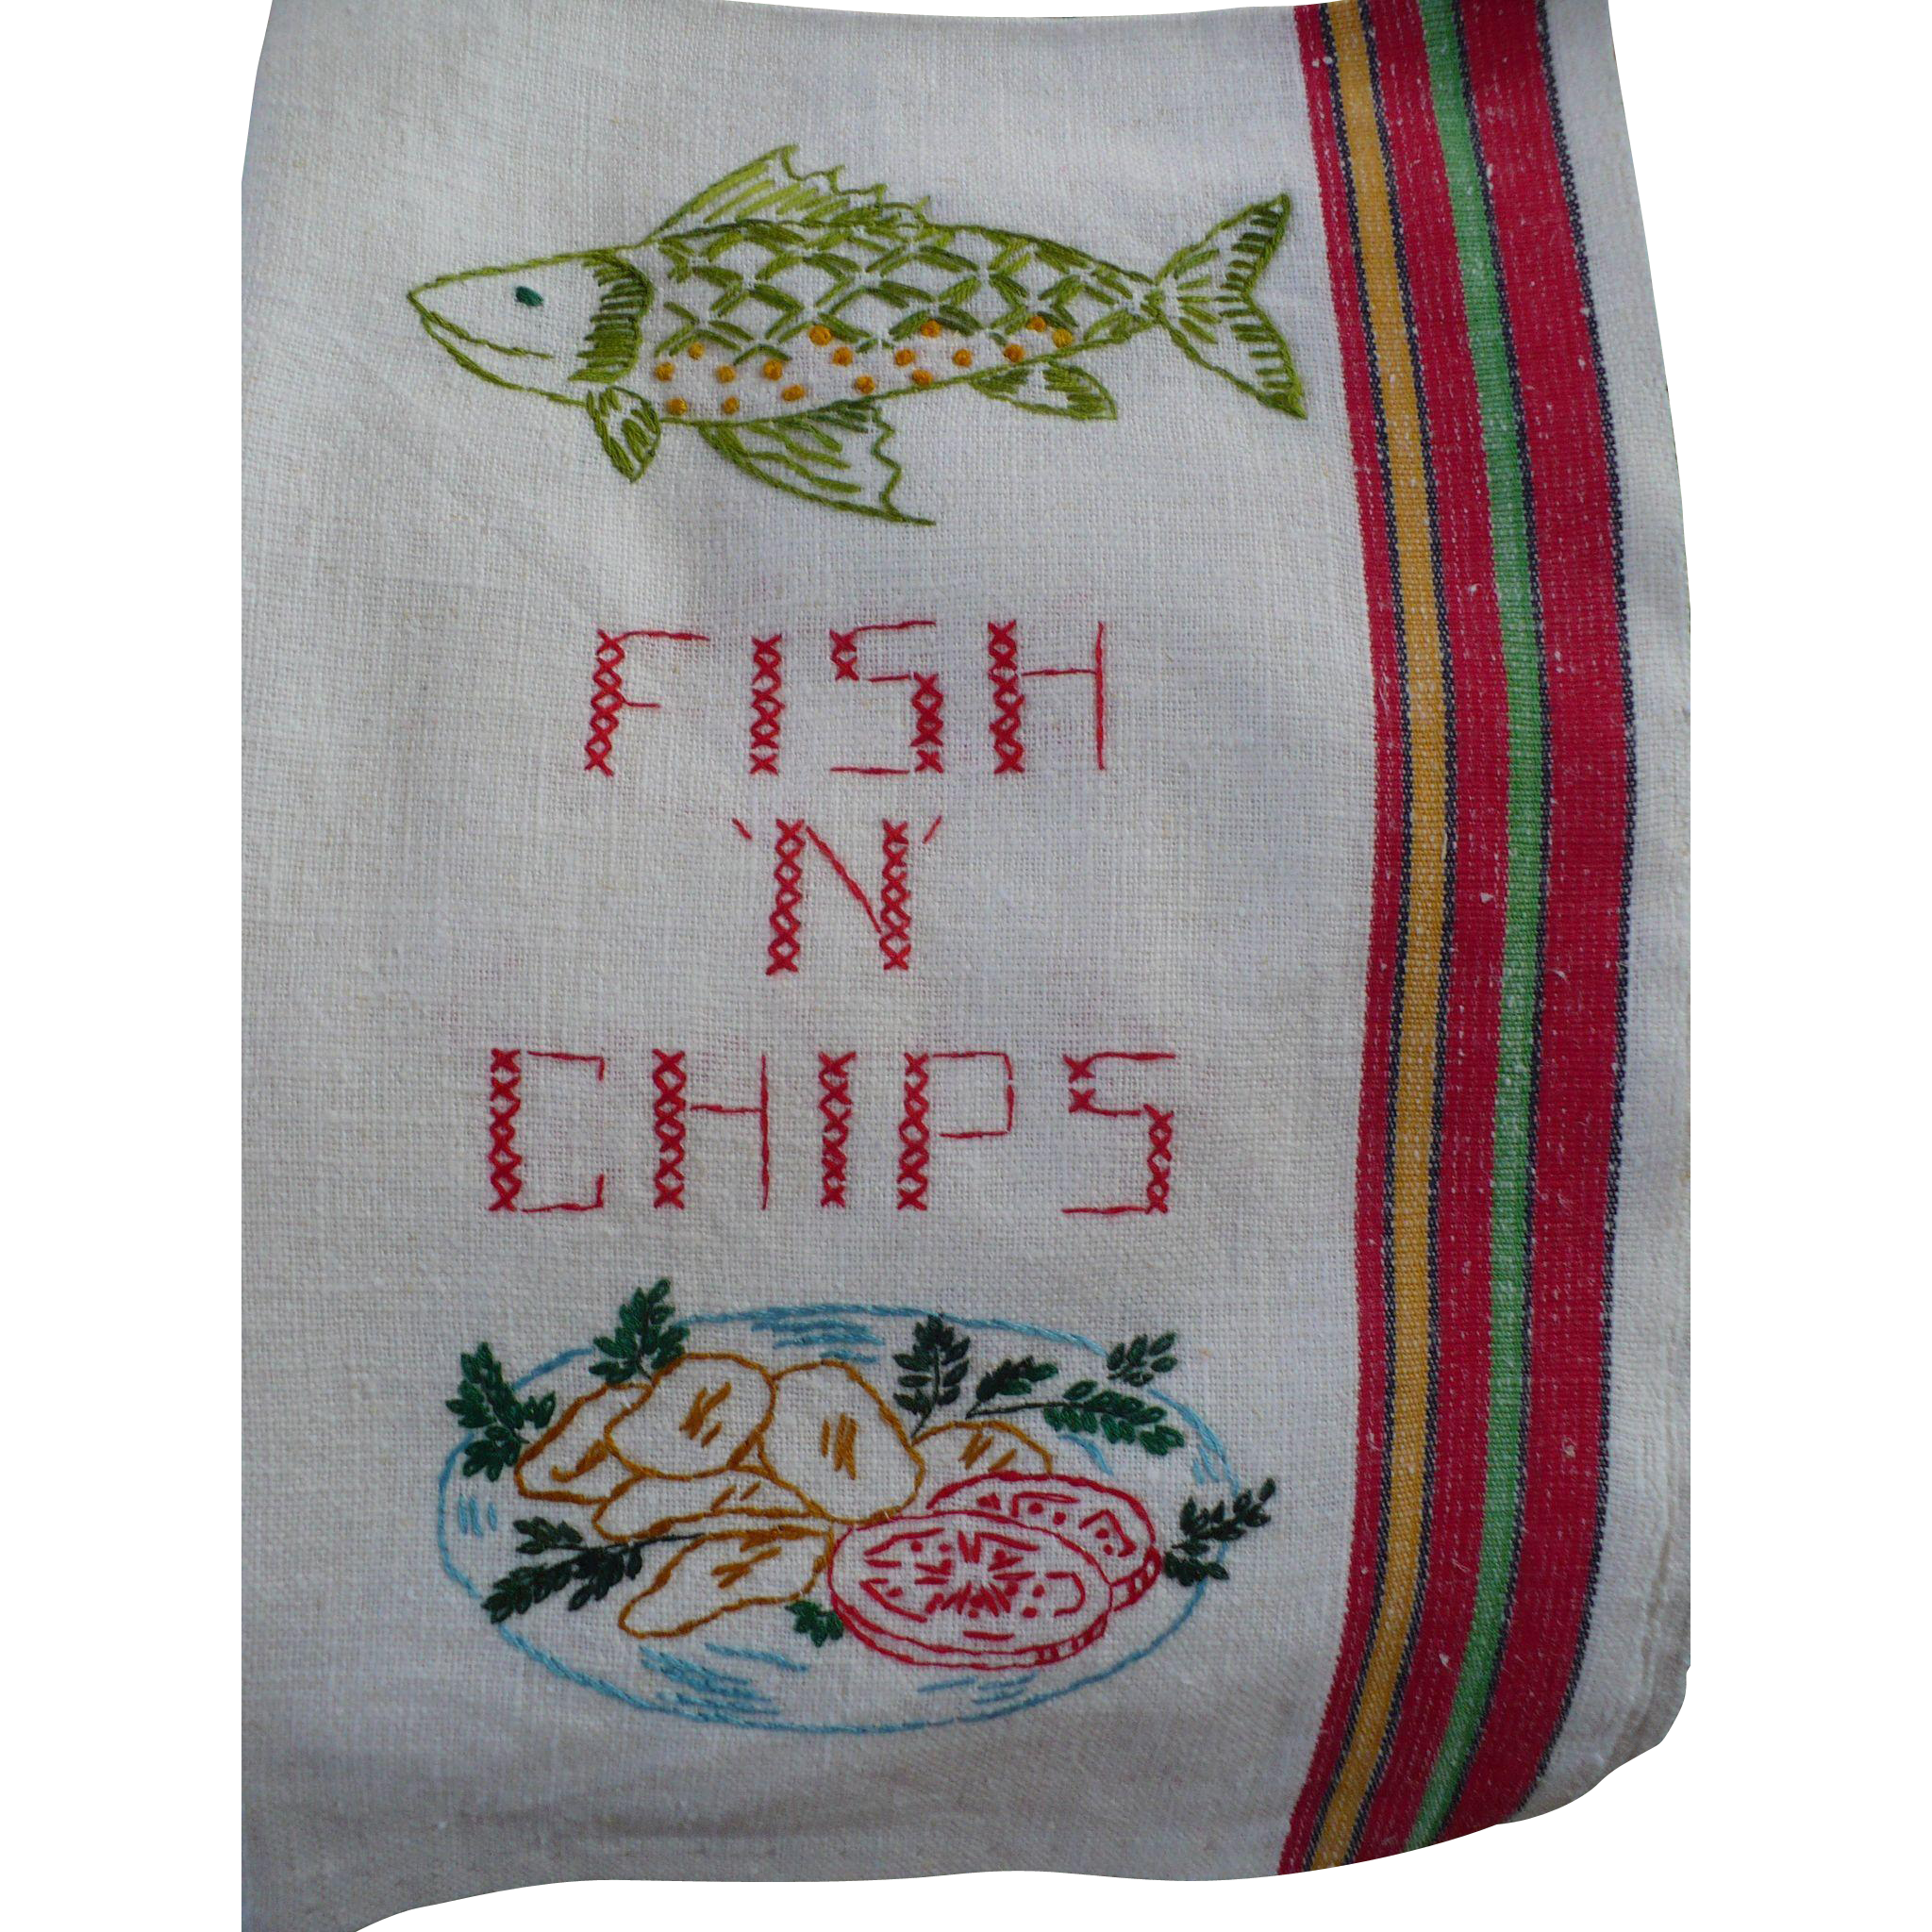 Fish Chips Embroidered Towel From Looluus On Ruby Lane